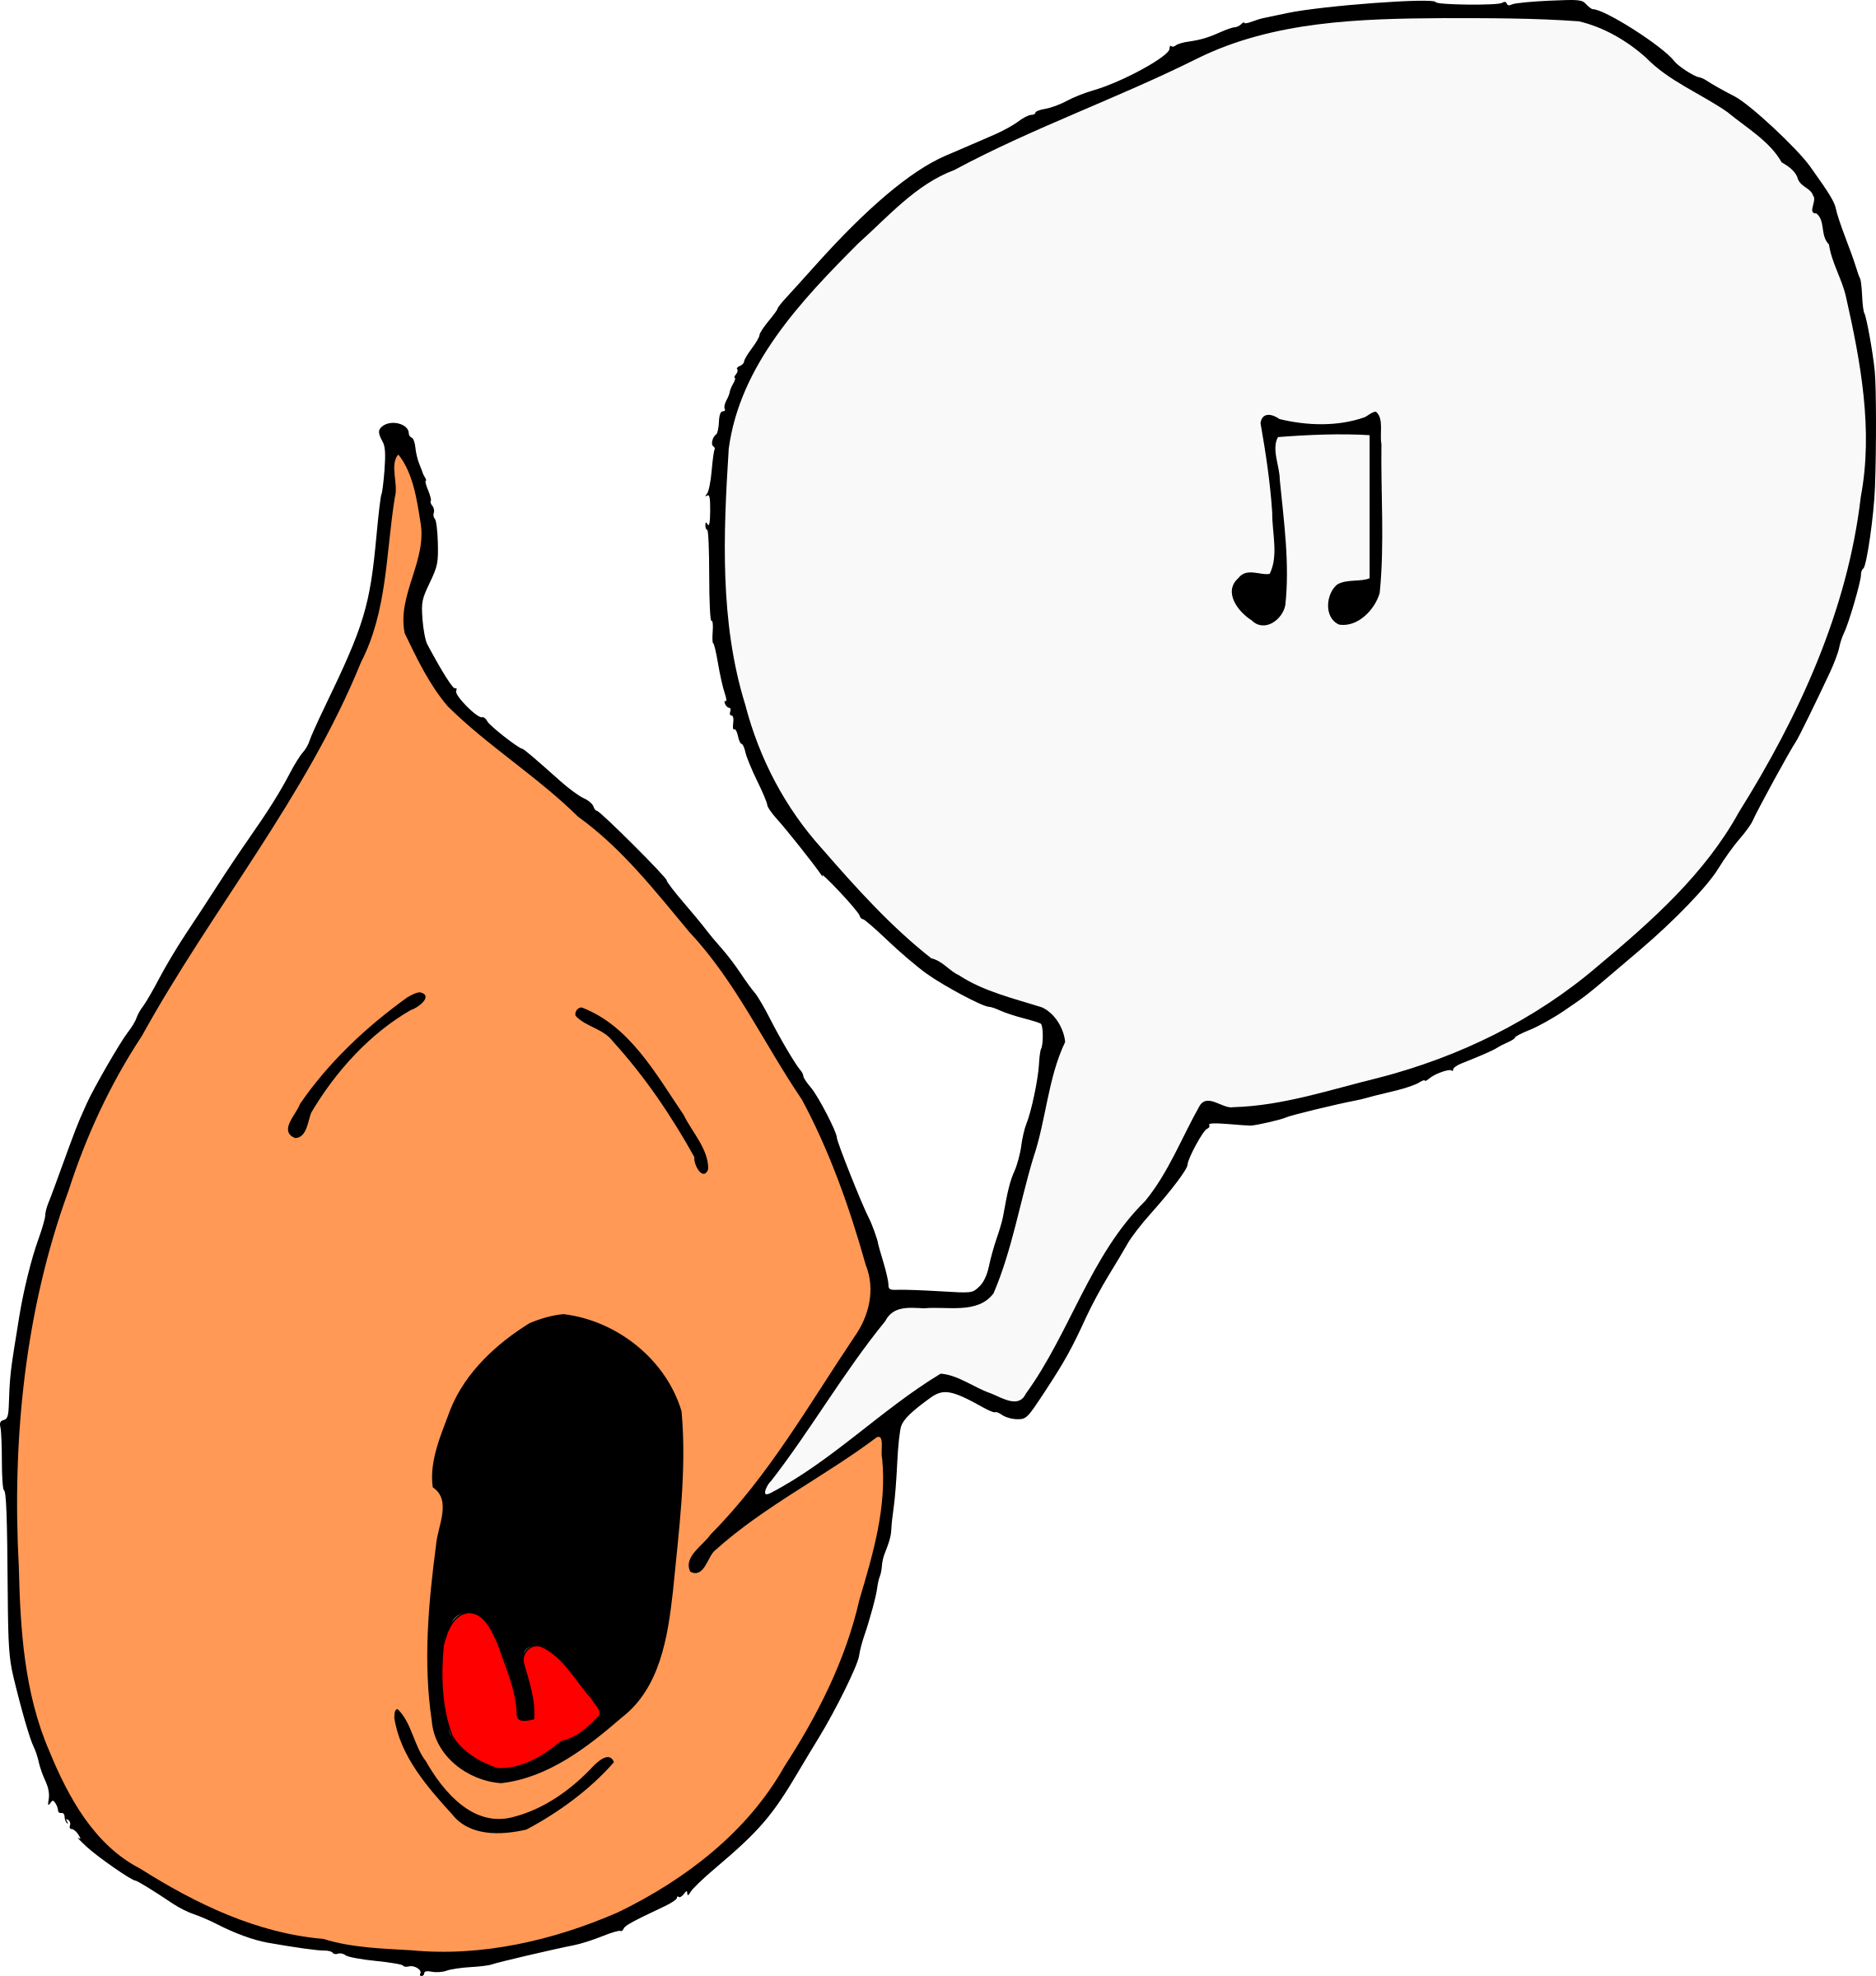 Song clipart #2, Download drawings